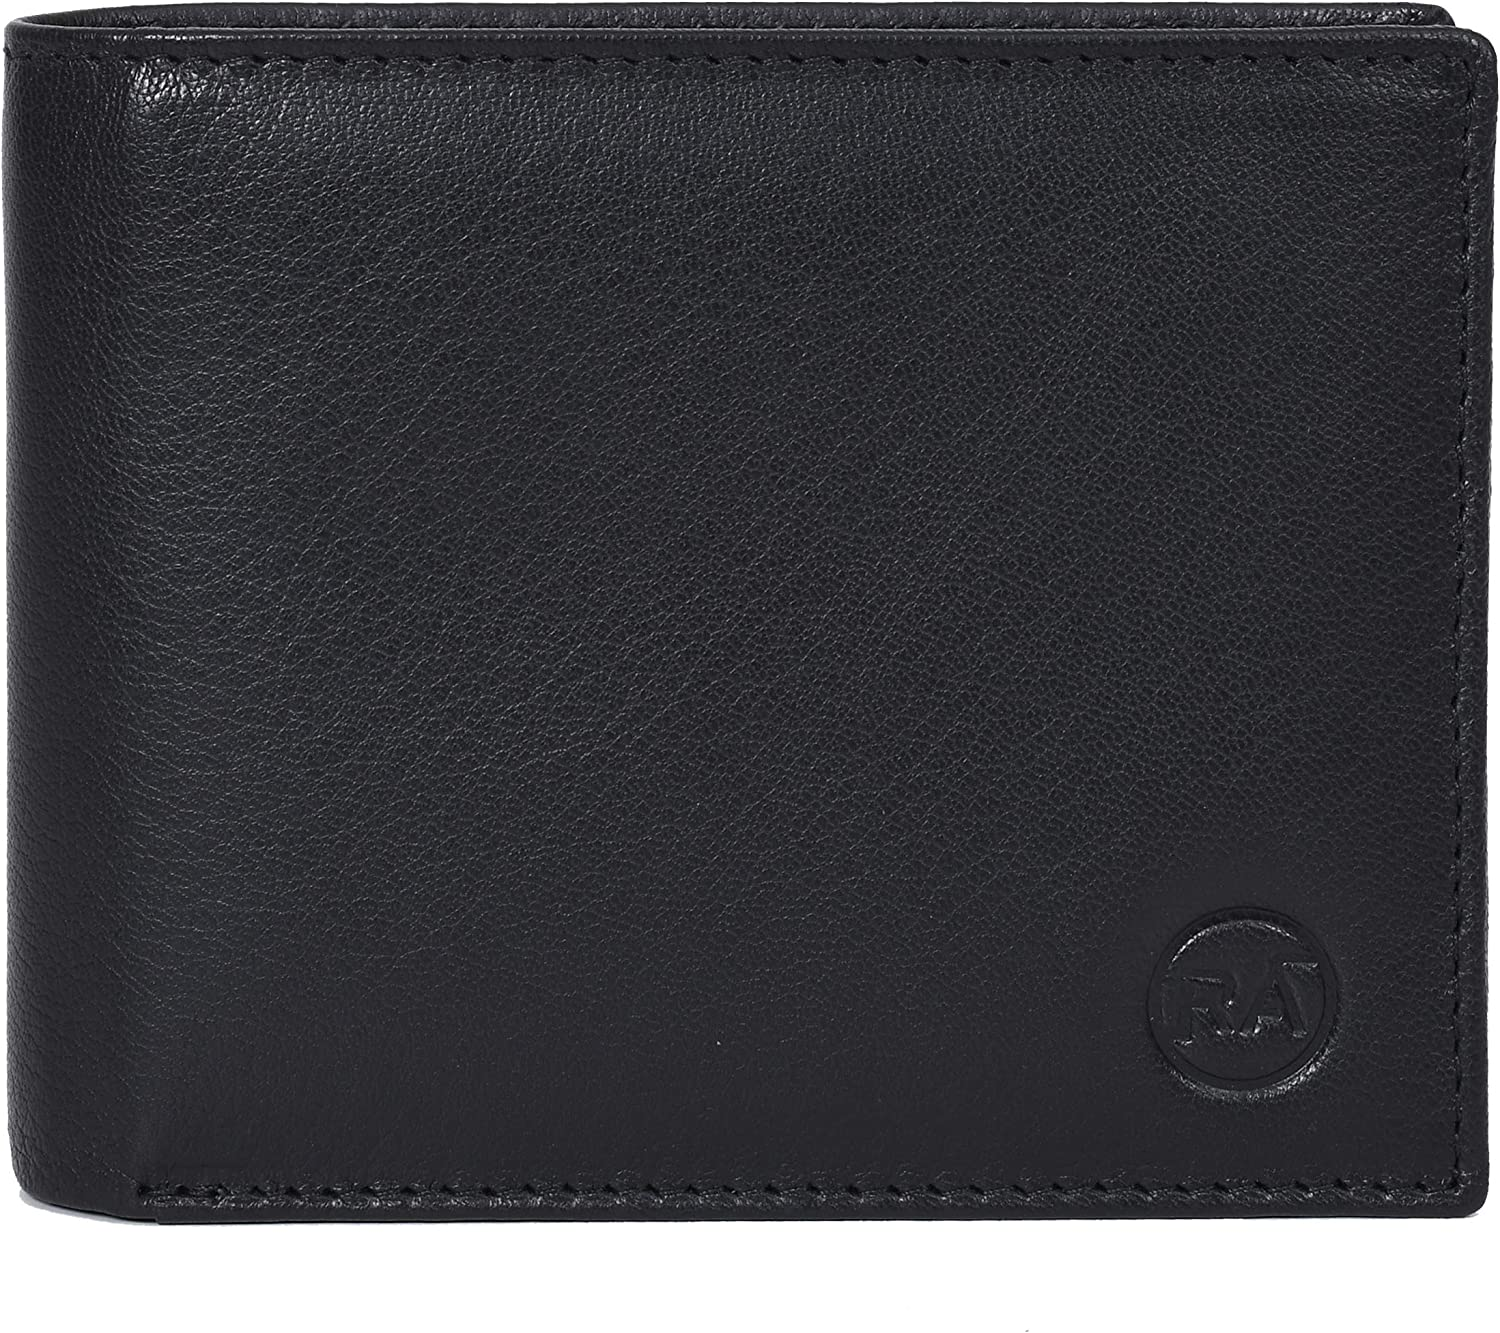 Rustic Ambrose Bifold RFID Leather Wallet with 10 card slots and 2 currency slots